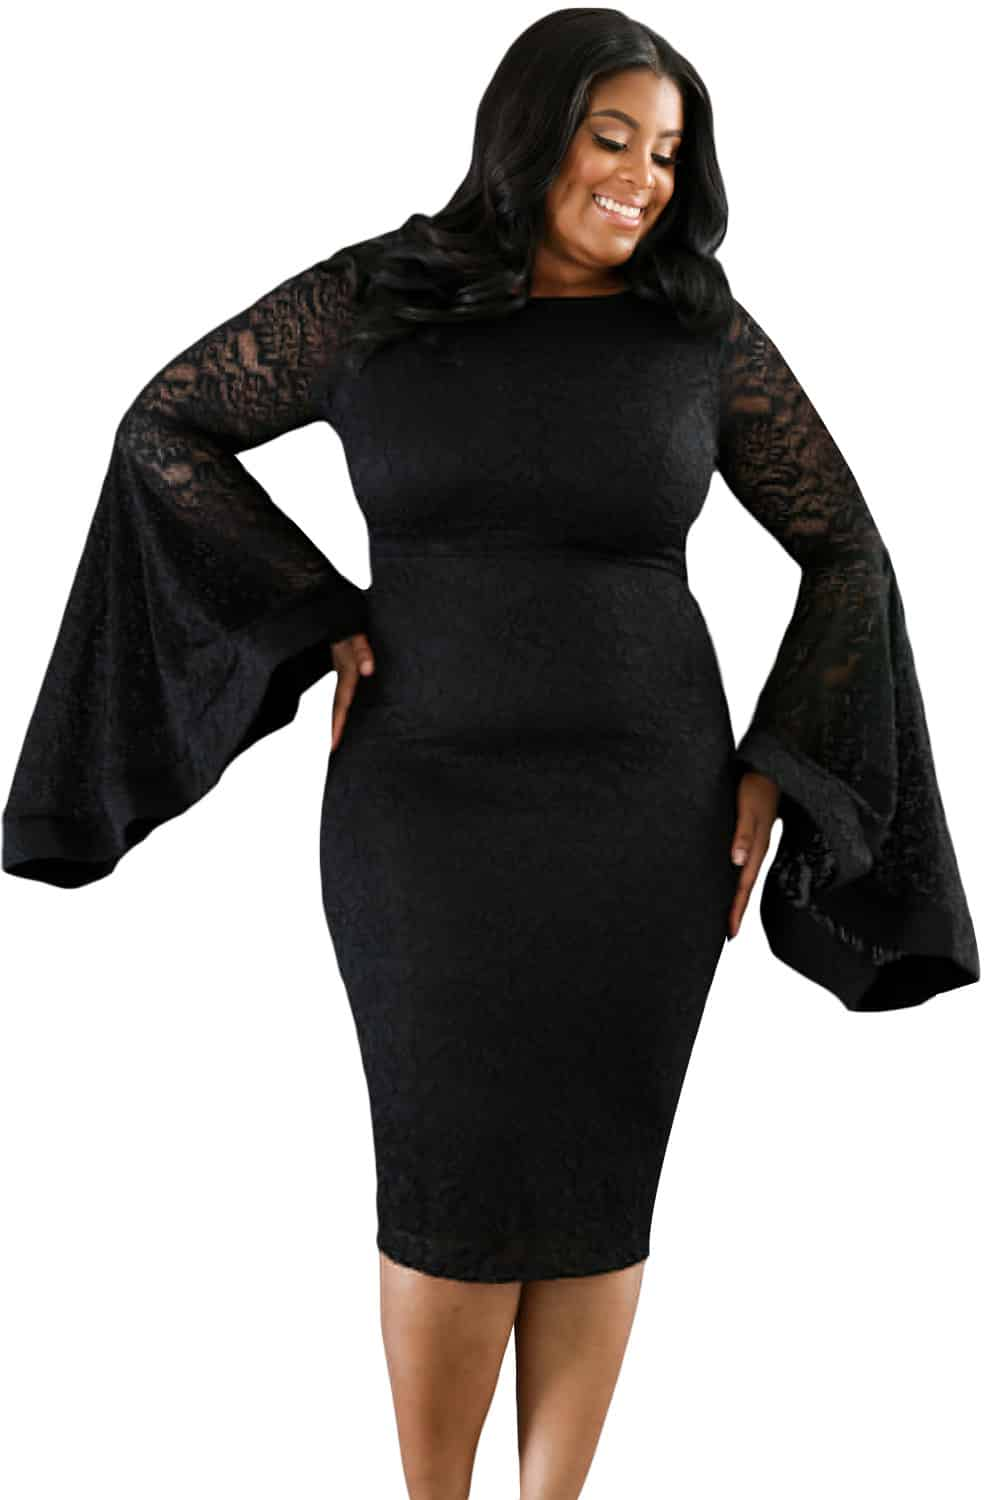 Black Plus Size Bell Sleeves Lace Dress Lc61396 2 2 Curvyplus